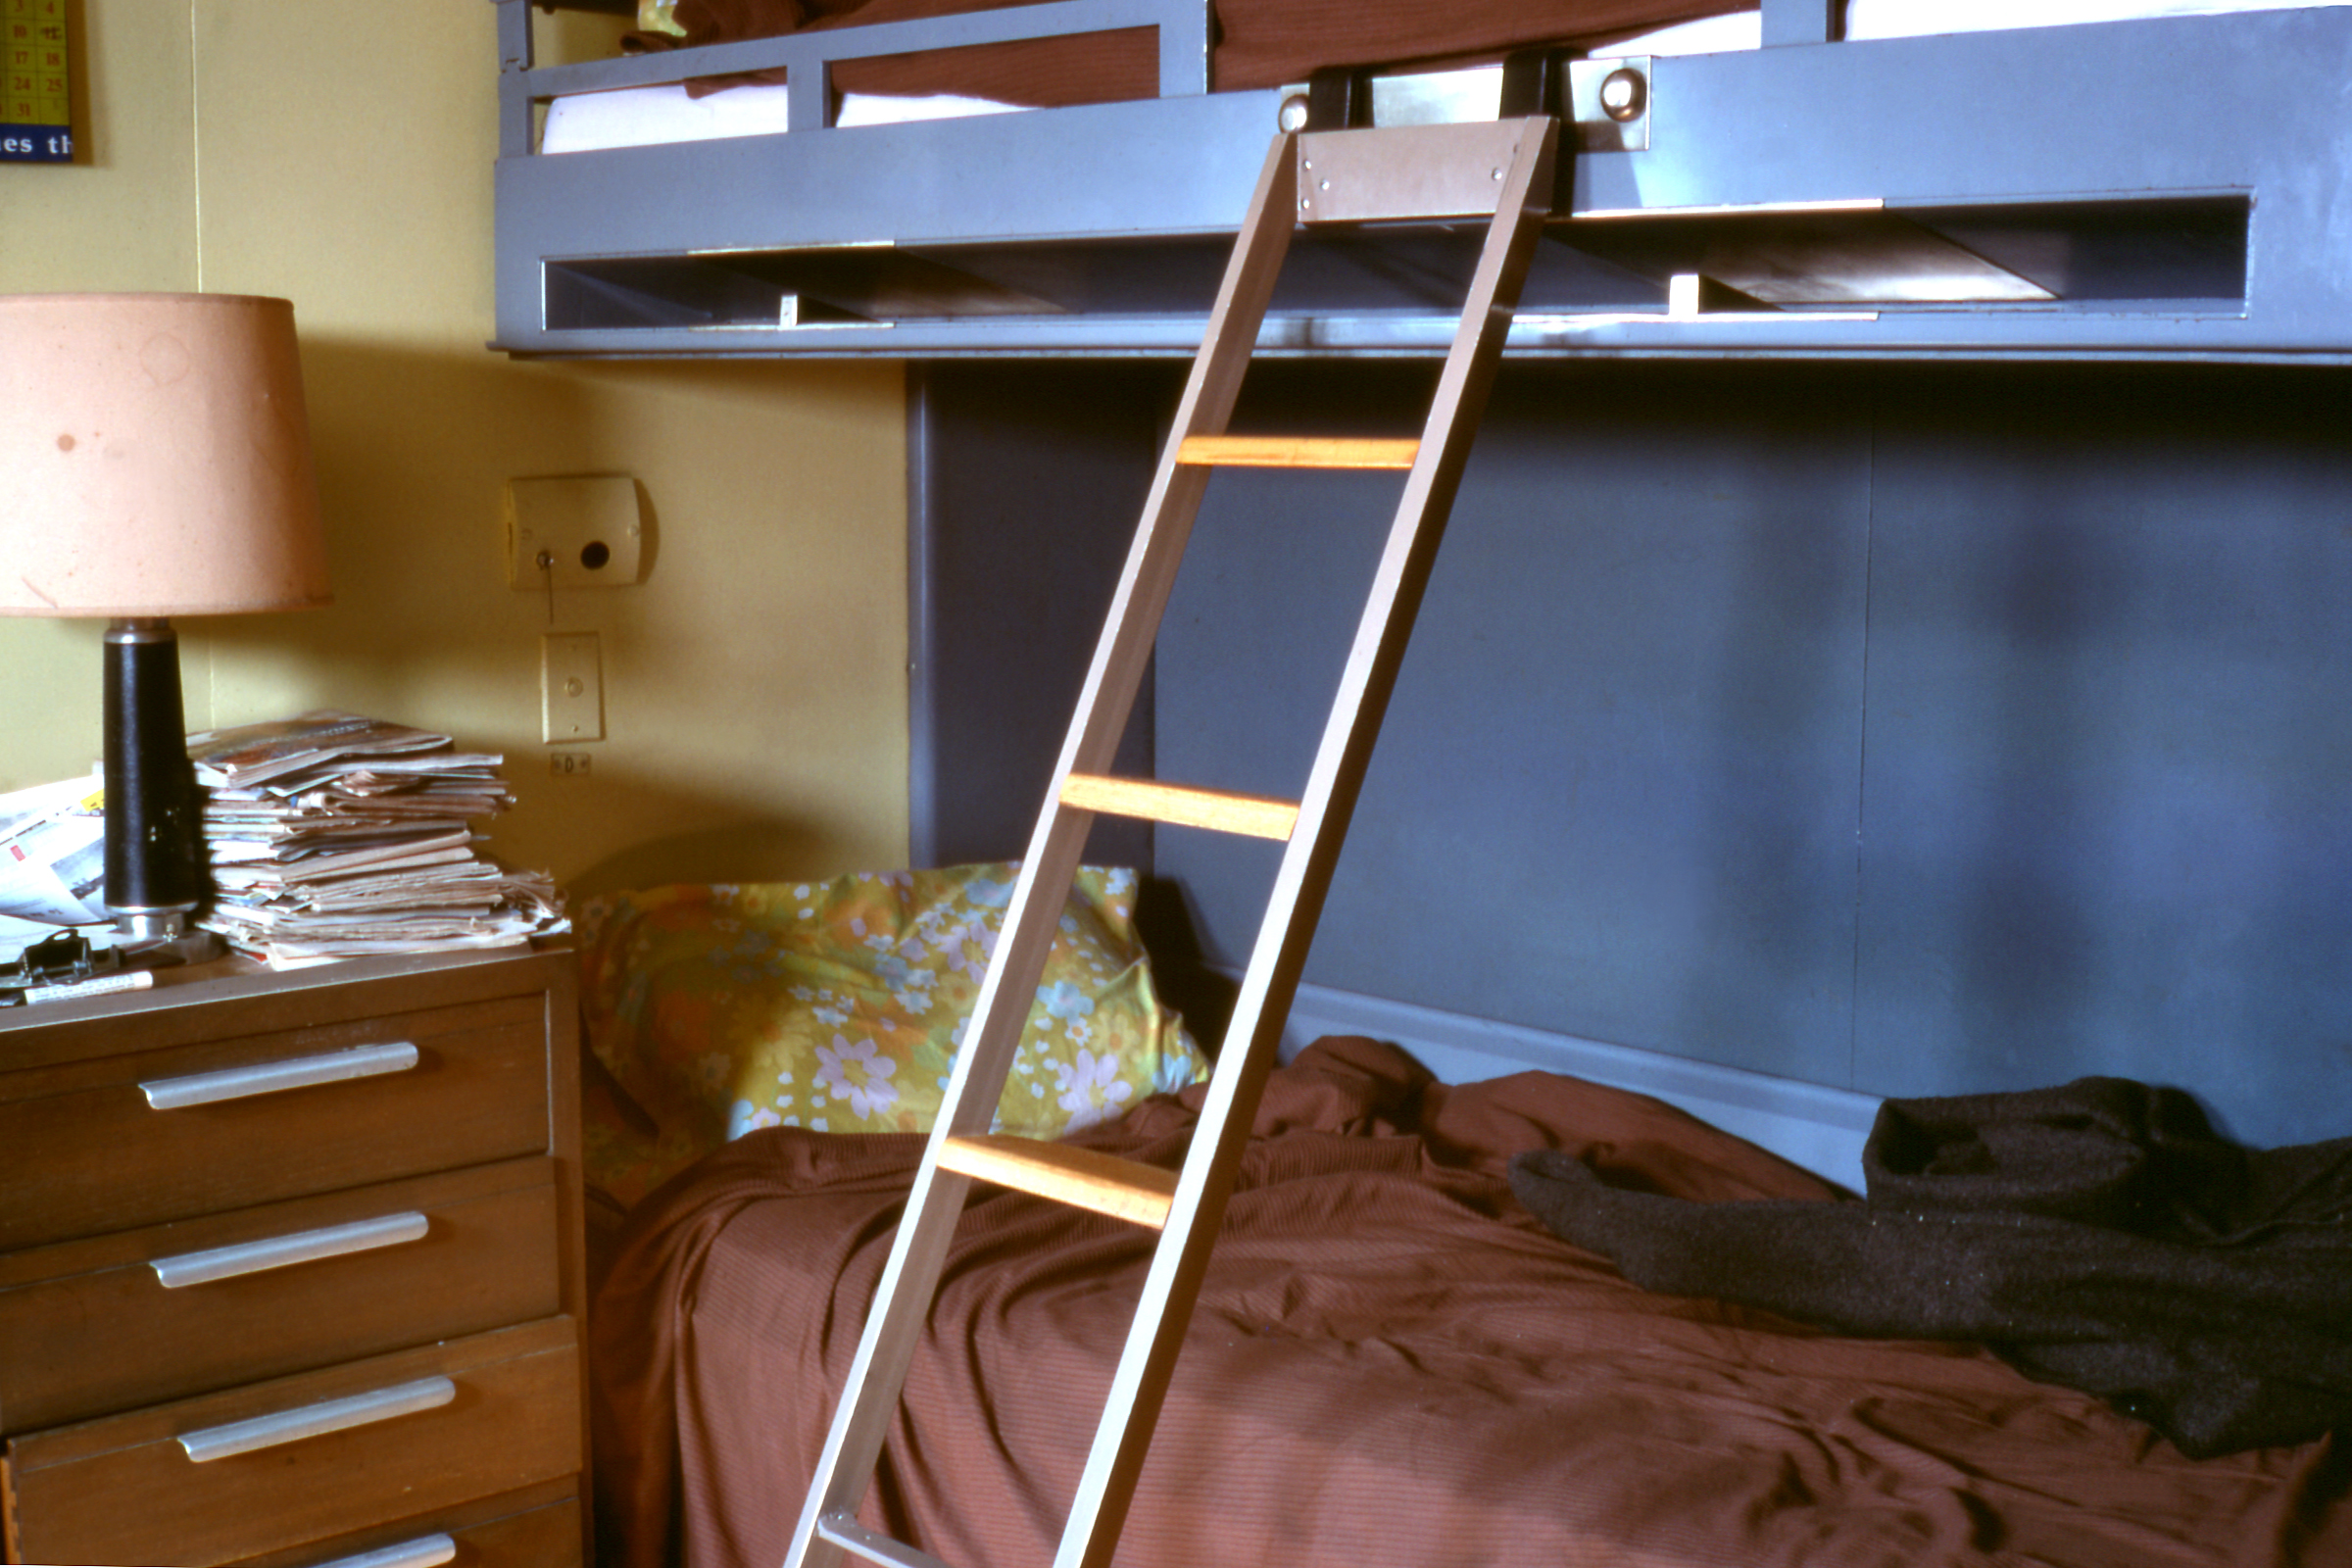 Bunk Beds With Rails On Top And Bottom